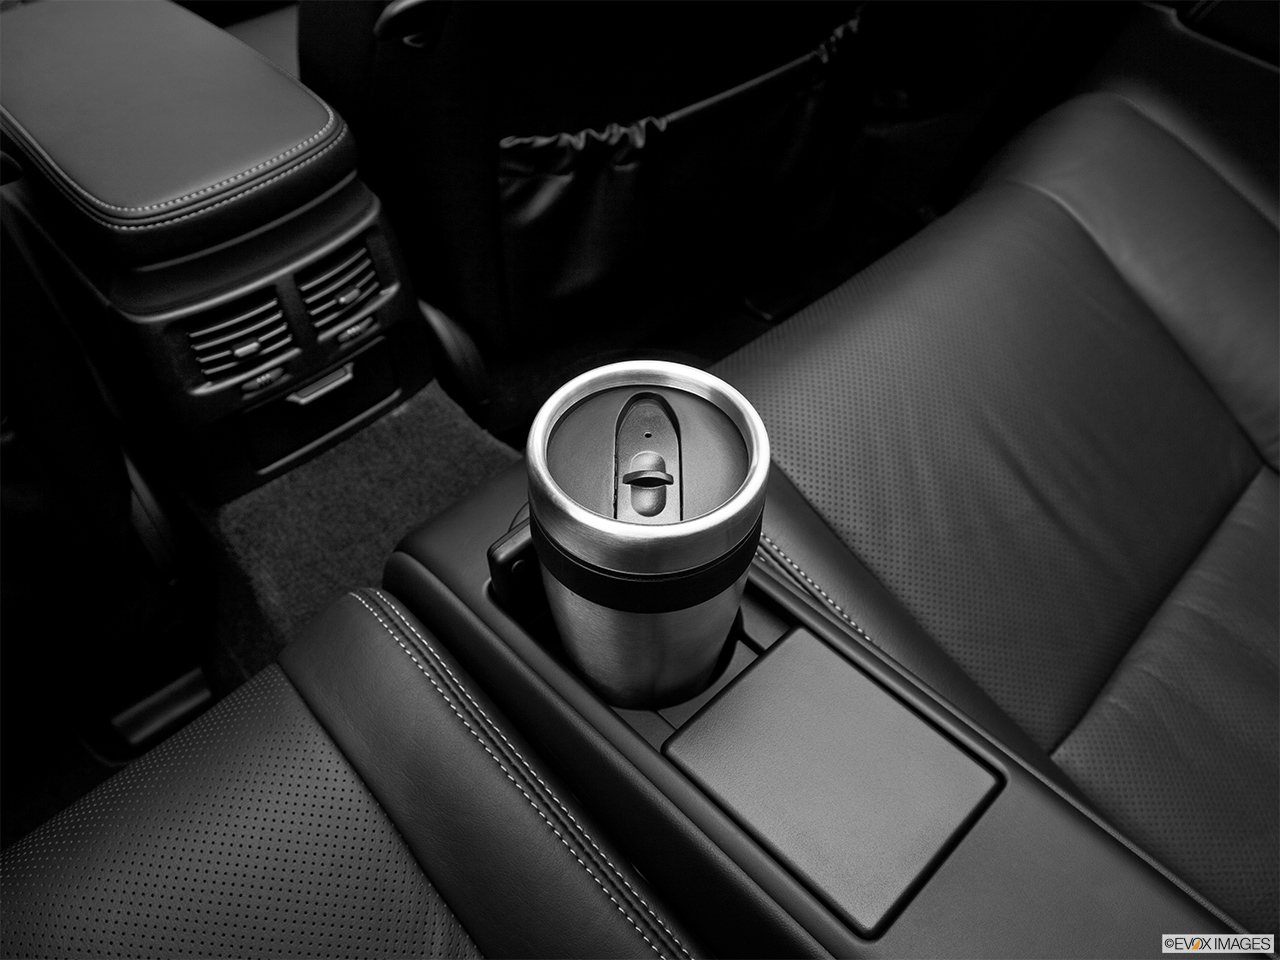 2013 Lexus IS 250C IS 250 C RWD Third Row center cup holder with coffee prop.